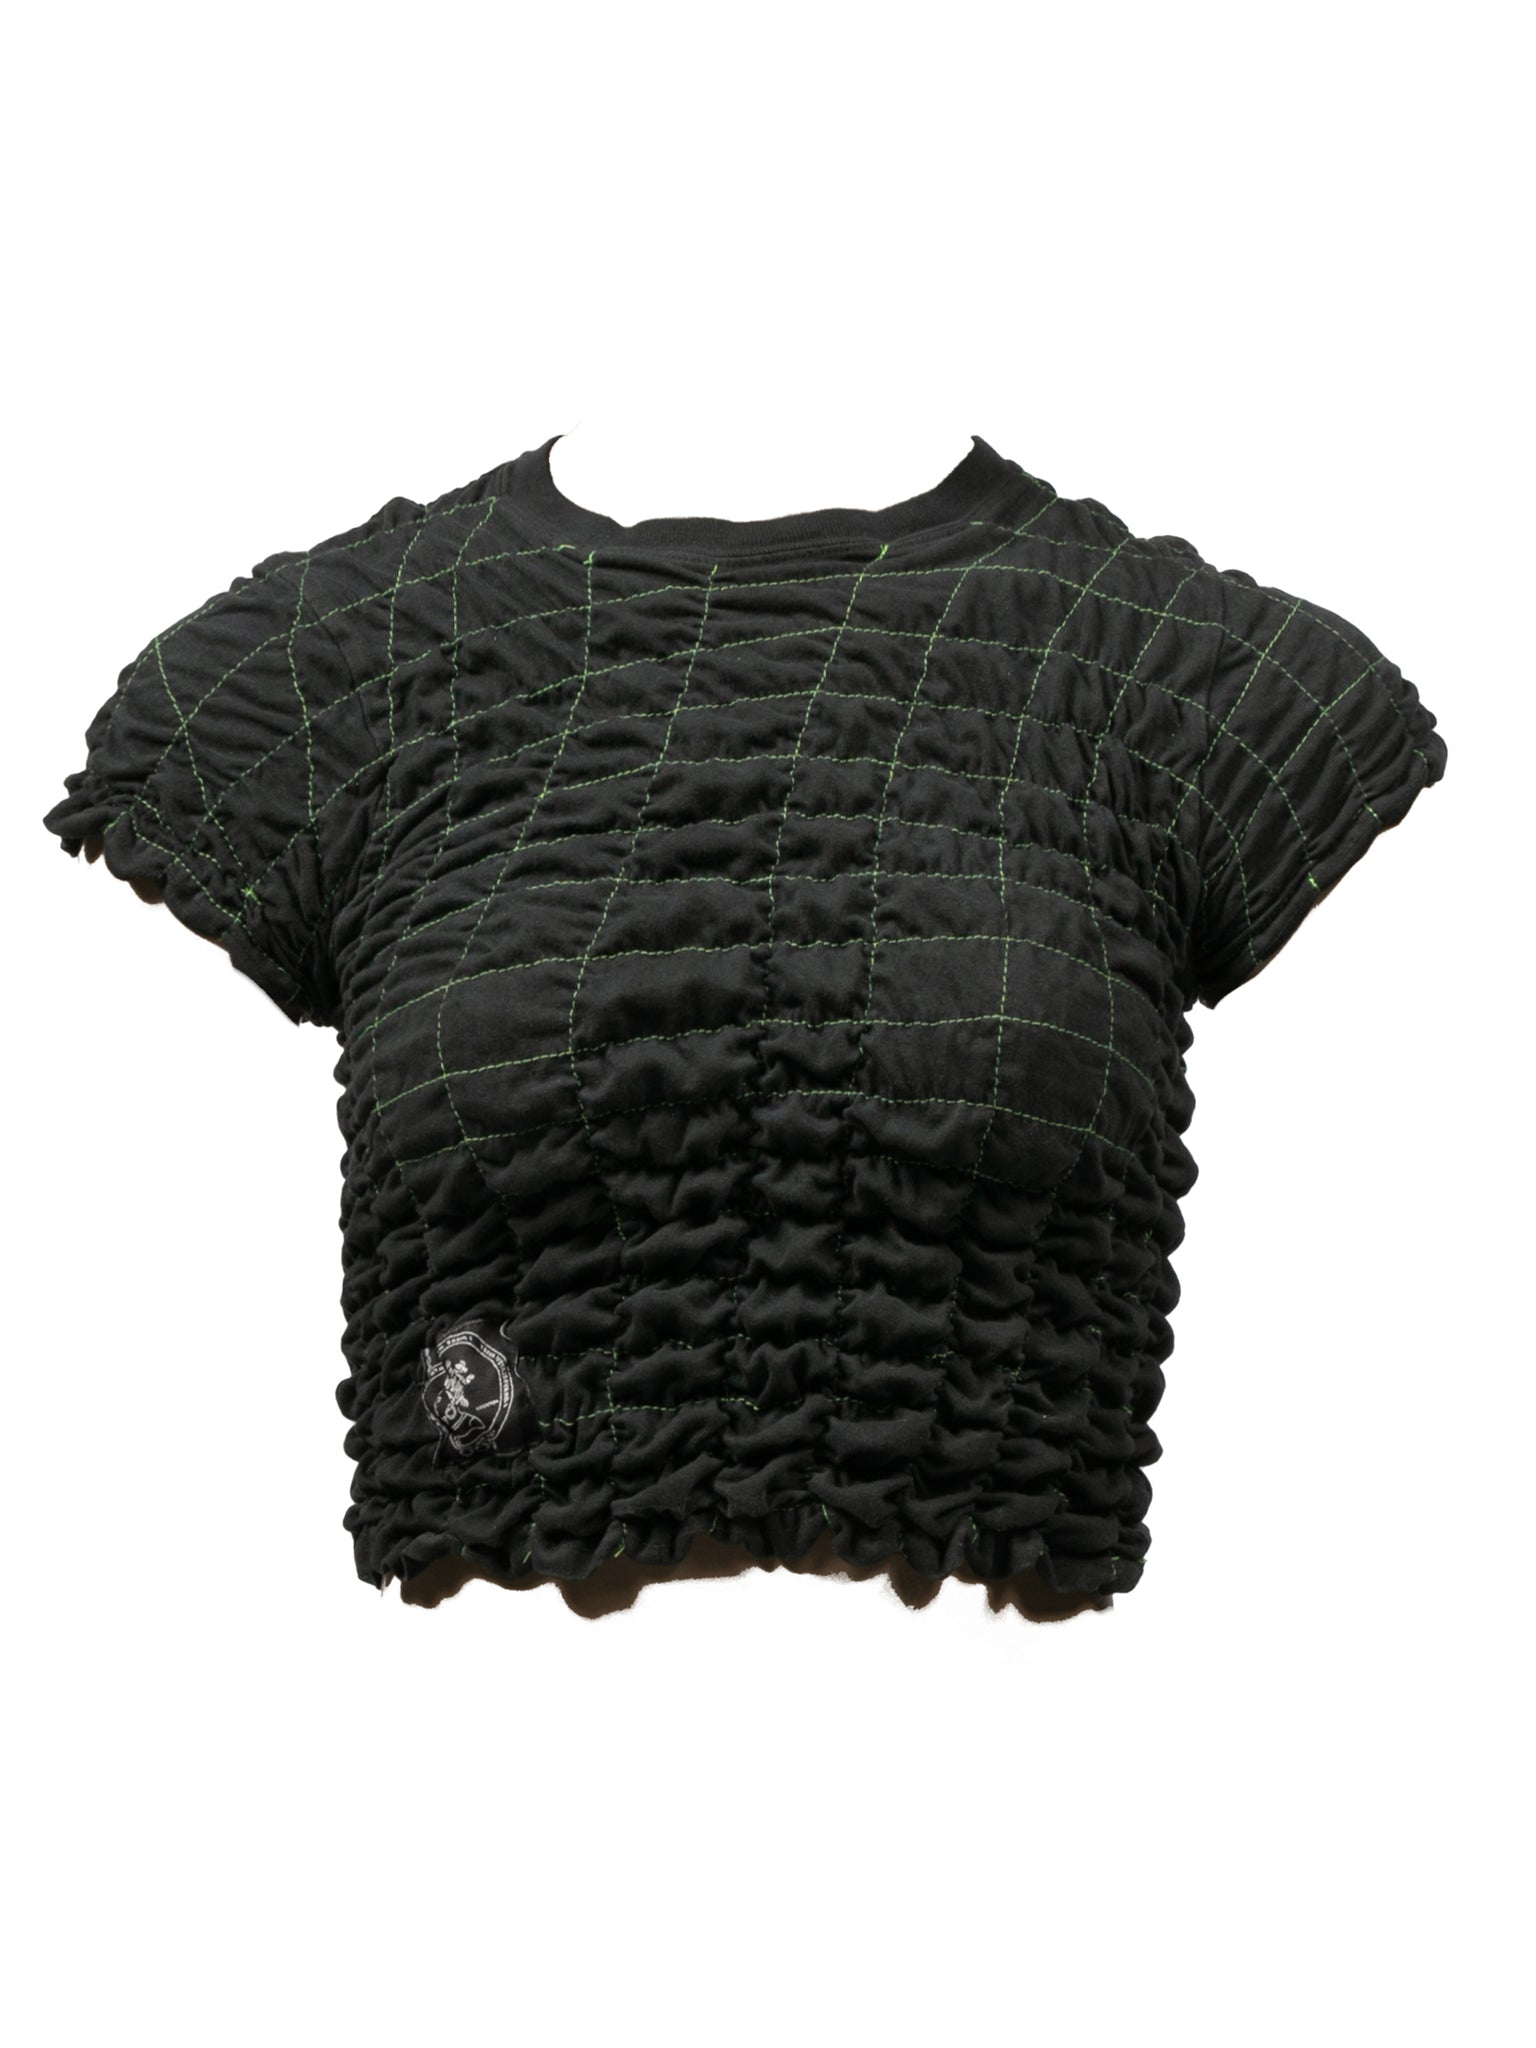 Scrunchie Crop Top - Black w/ green thread